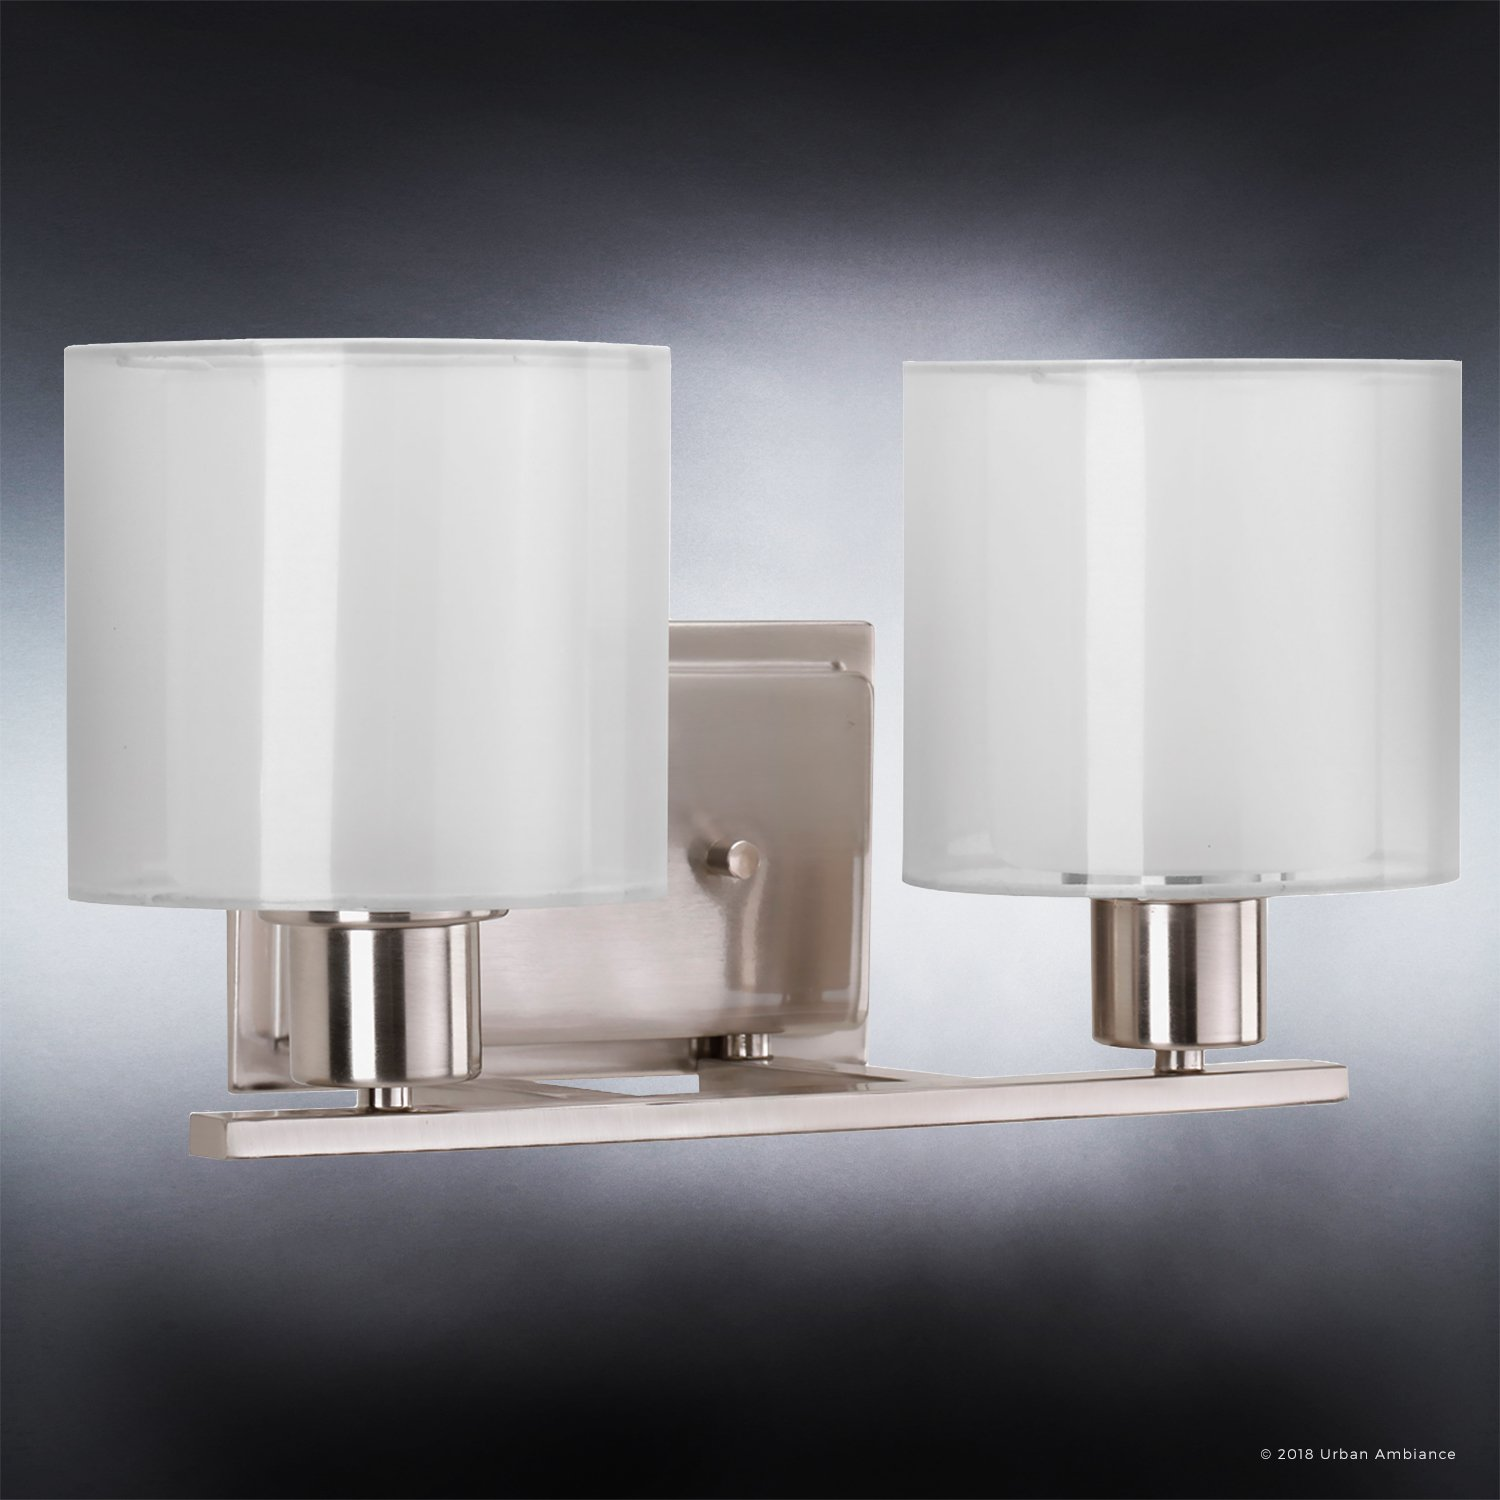 Luxury Cosmopolitan Bathroom Vanity Light, Medium Size: 7.375''H x 14.5''W, with Transitional Style Elements, Brushed Nickel Finish and White Shade, UHP2510 from The Tacoma Collection by Urban Ambiance by Urban Ambiance (Image #4)